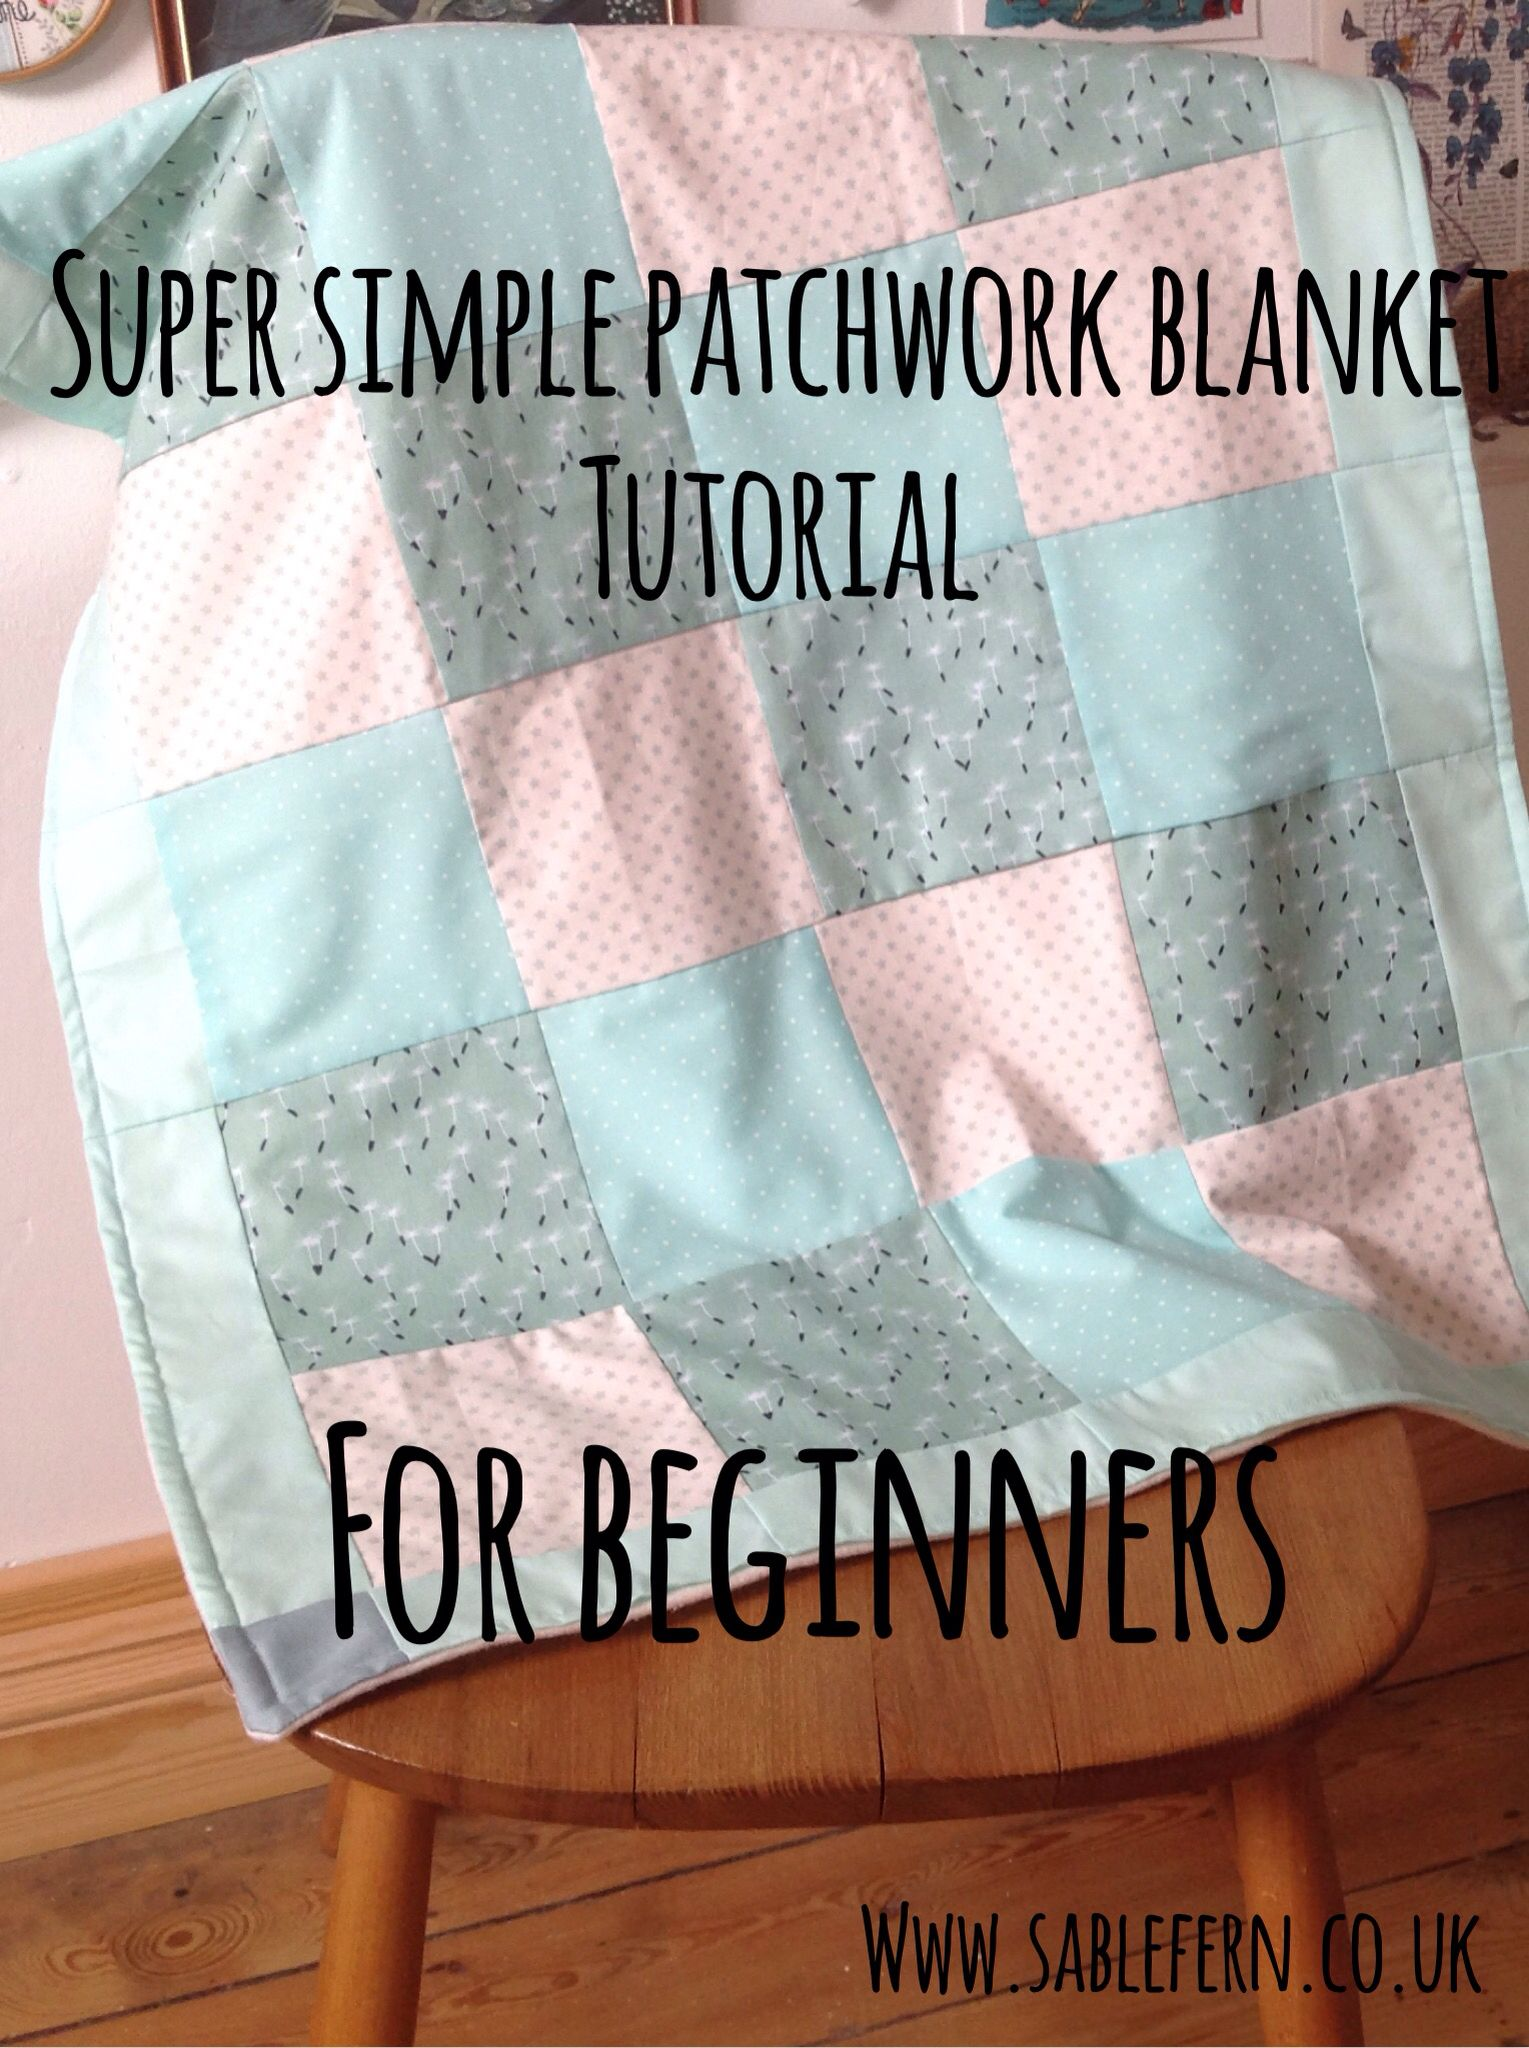 http://www.sablefern.co.uk/home/patchwork-blanket-sewing-tutorial ... : patchwork quilts for beginners - Adamdwight.com